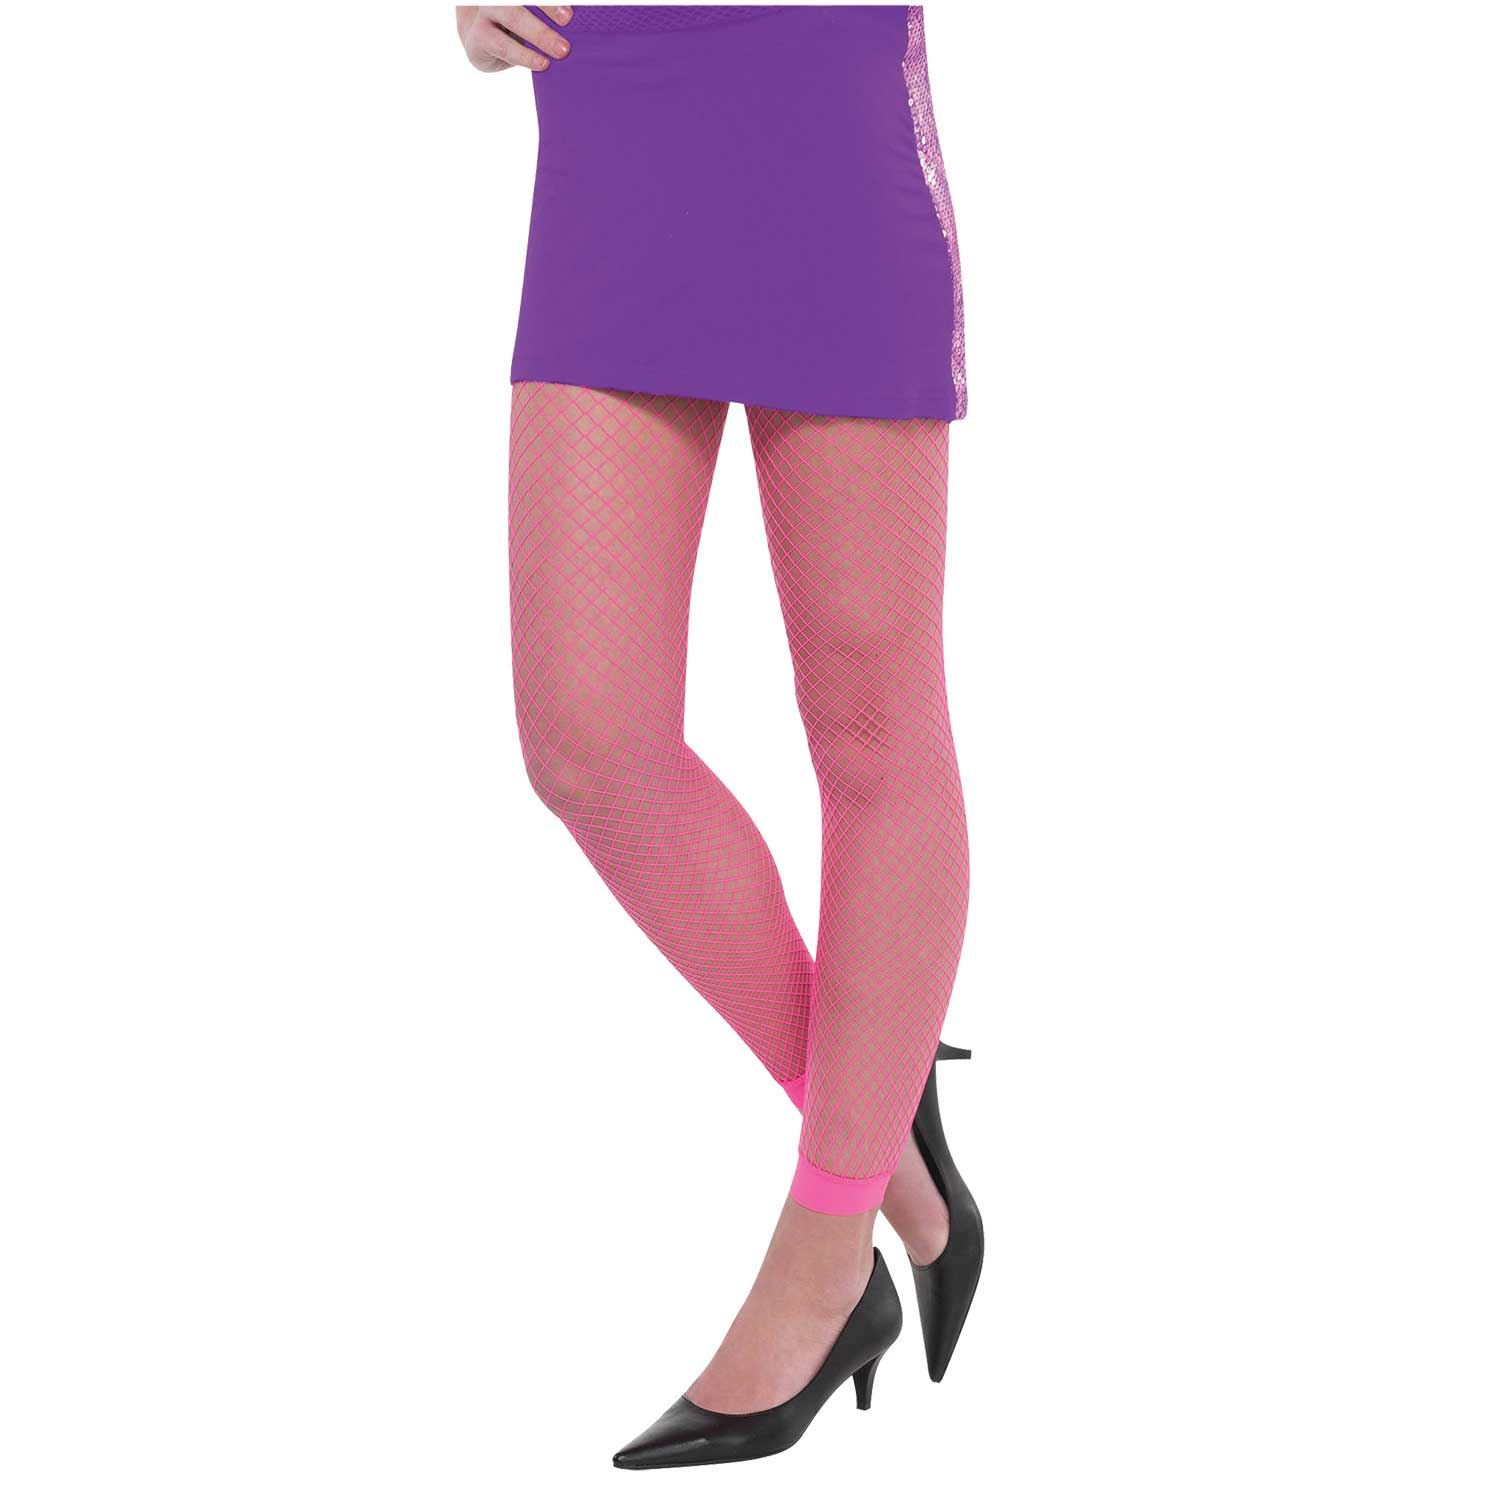 Adult Ladies Neon Pink 80s Disco Rave Fishnet Footless Tights Hosiery Accessory